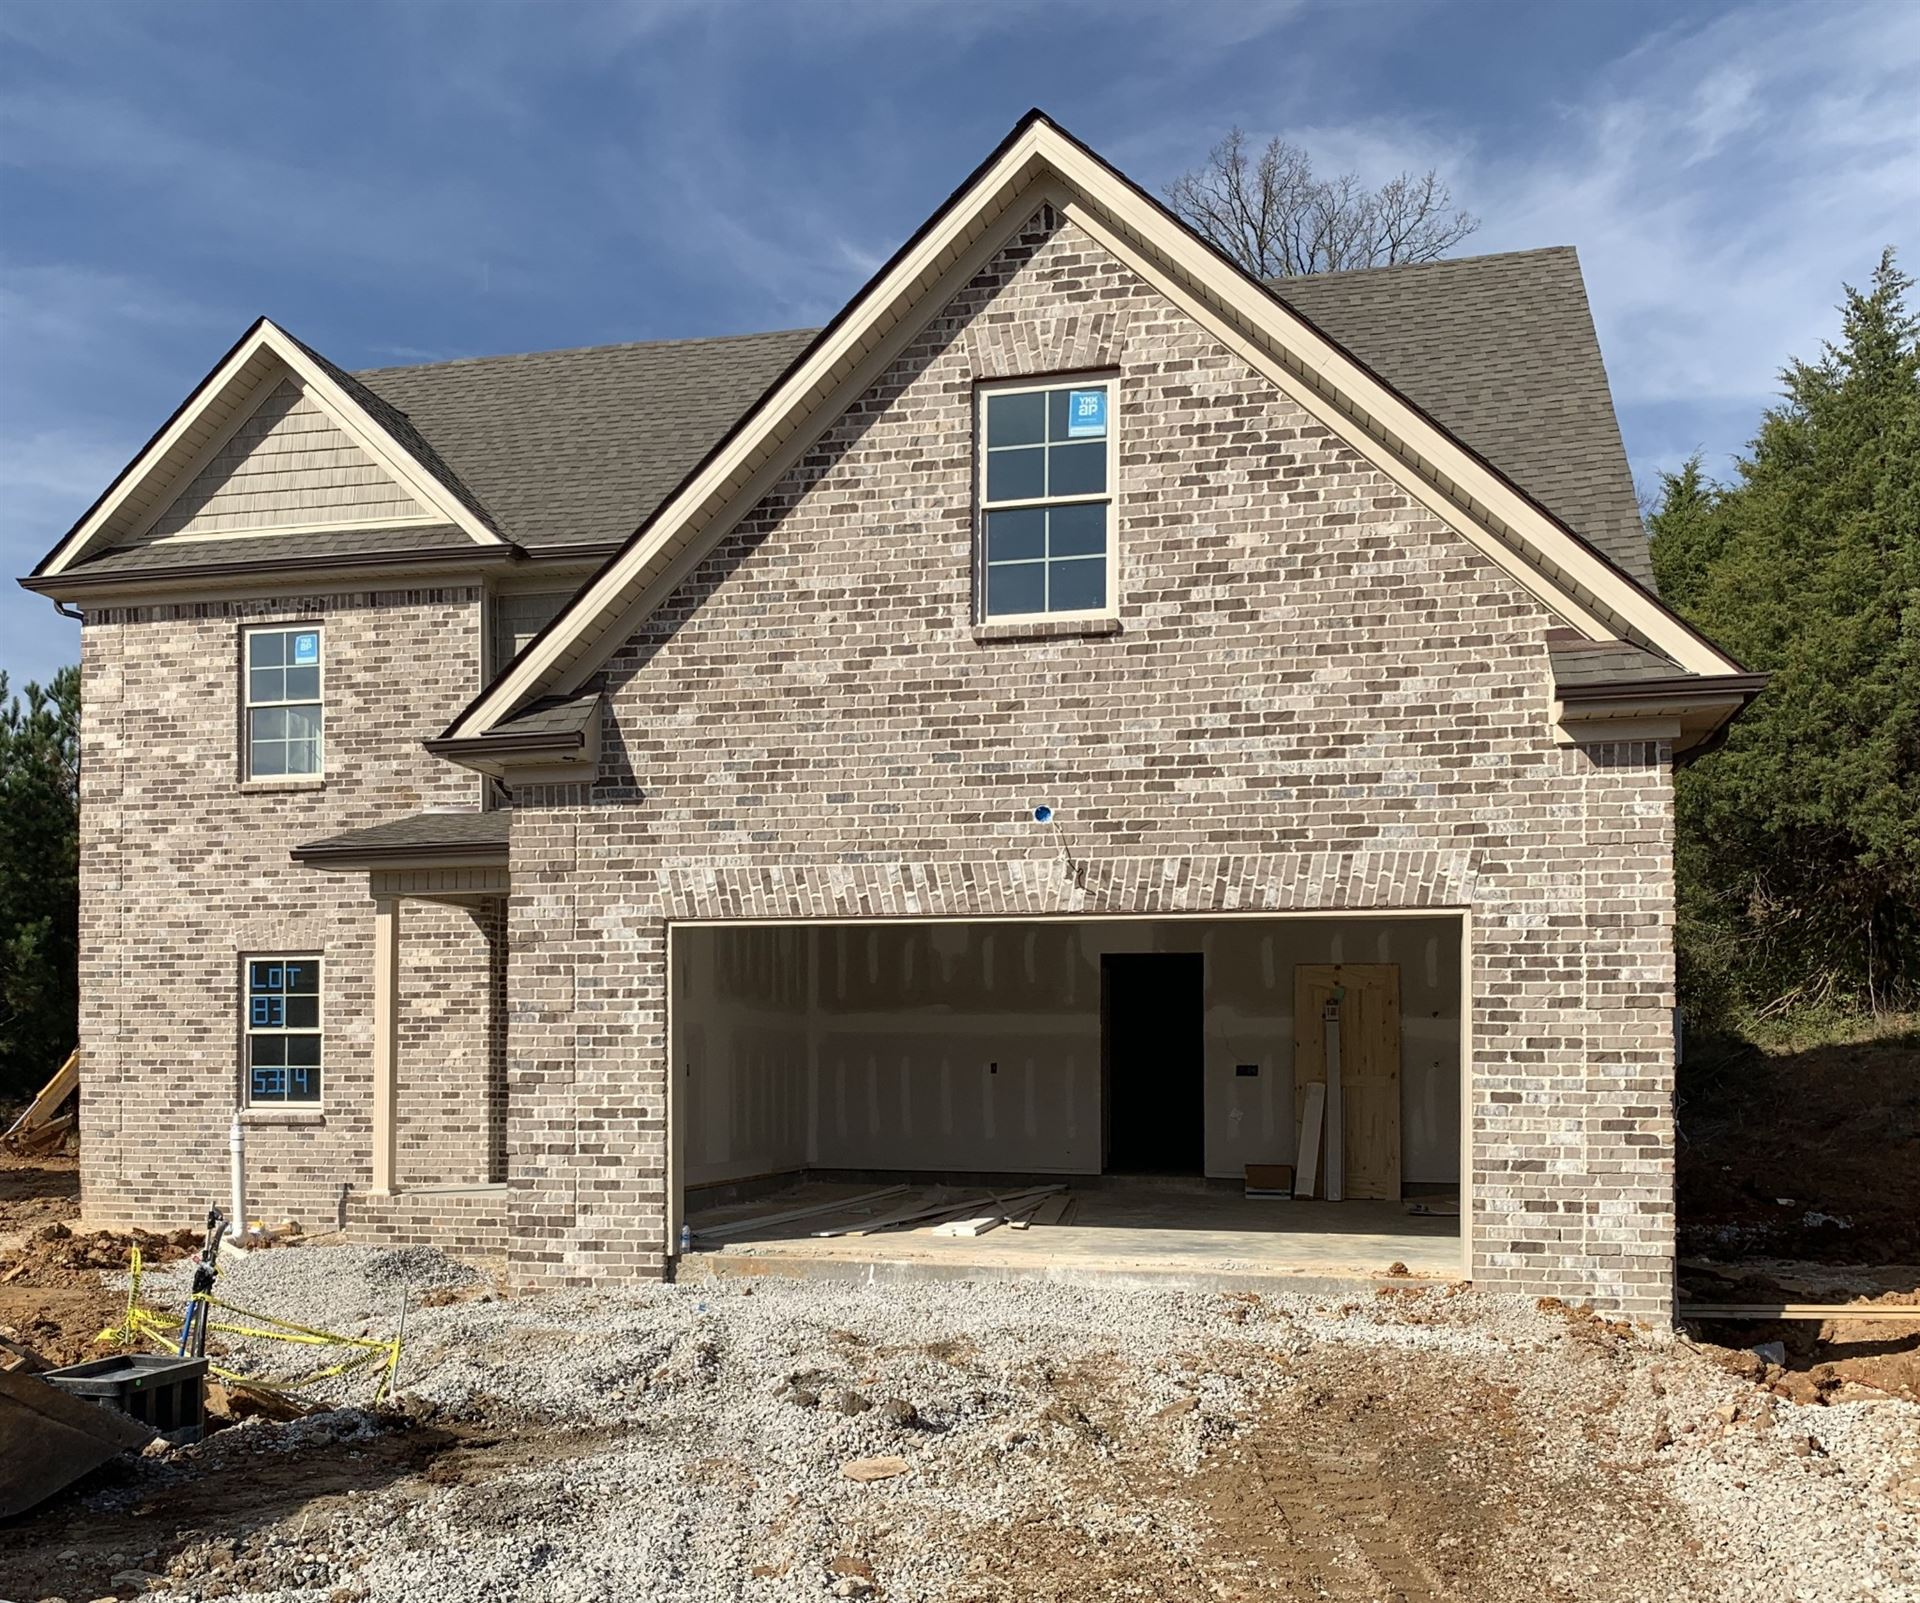 5334 Honeybee Dr, Murfreesboro, TN 37129 - MLS#: 2208745